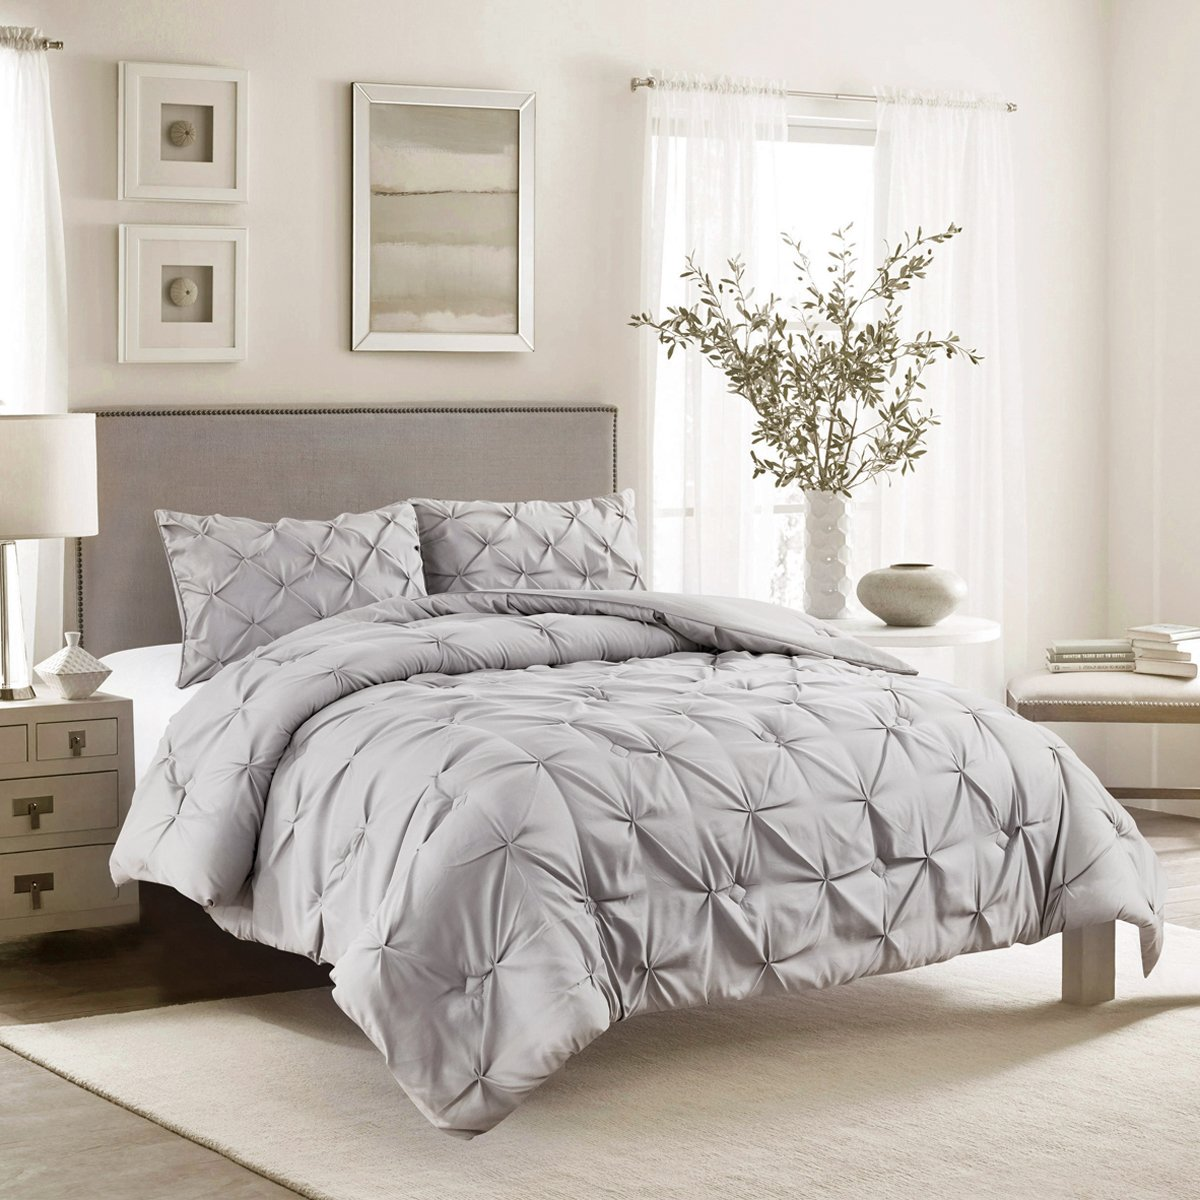 Jackson Hole Home 3 PC Elegant Original Pinch Pleat Puckering Comforter Set, Light Gray, King